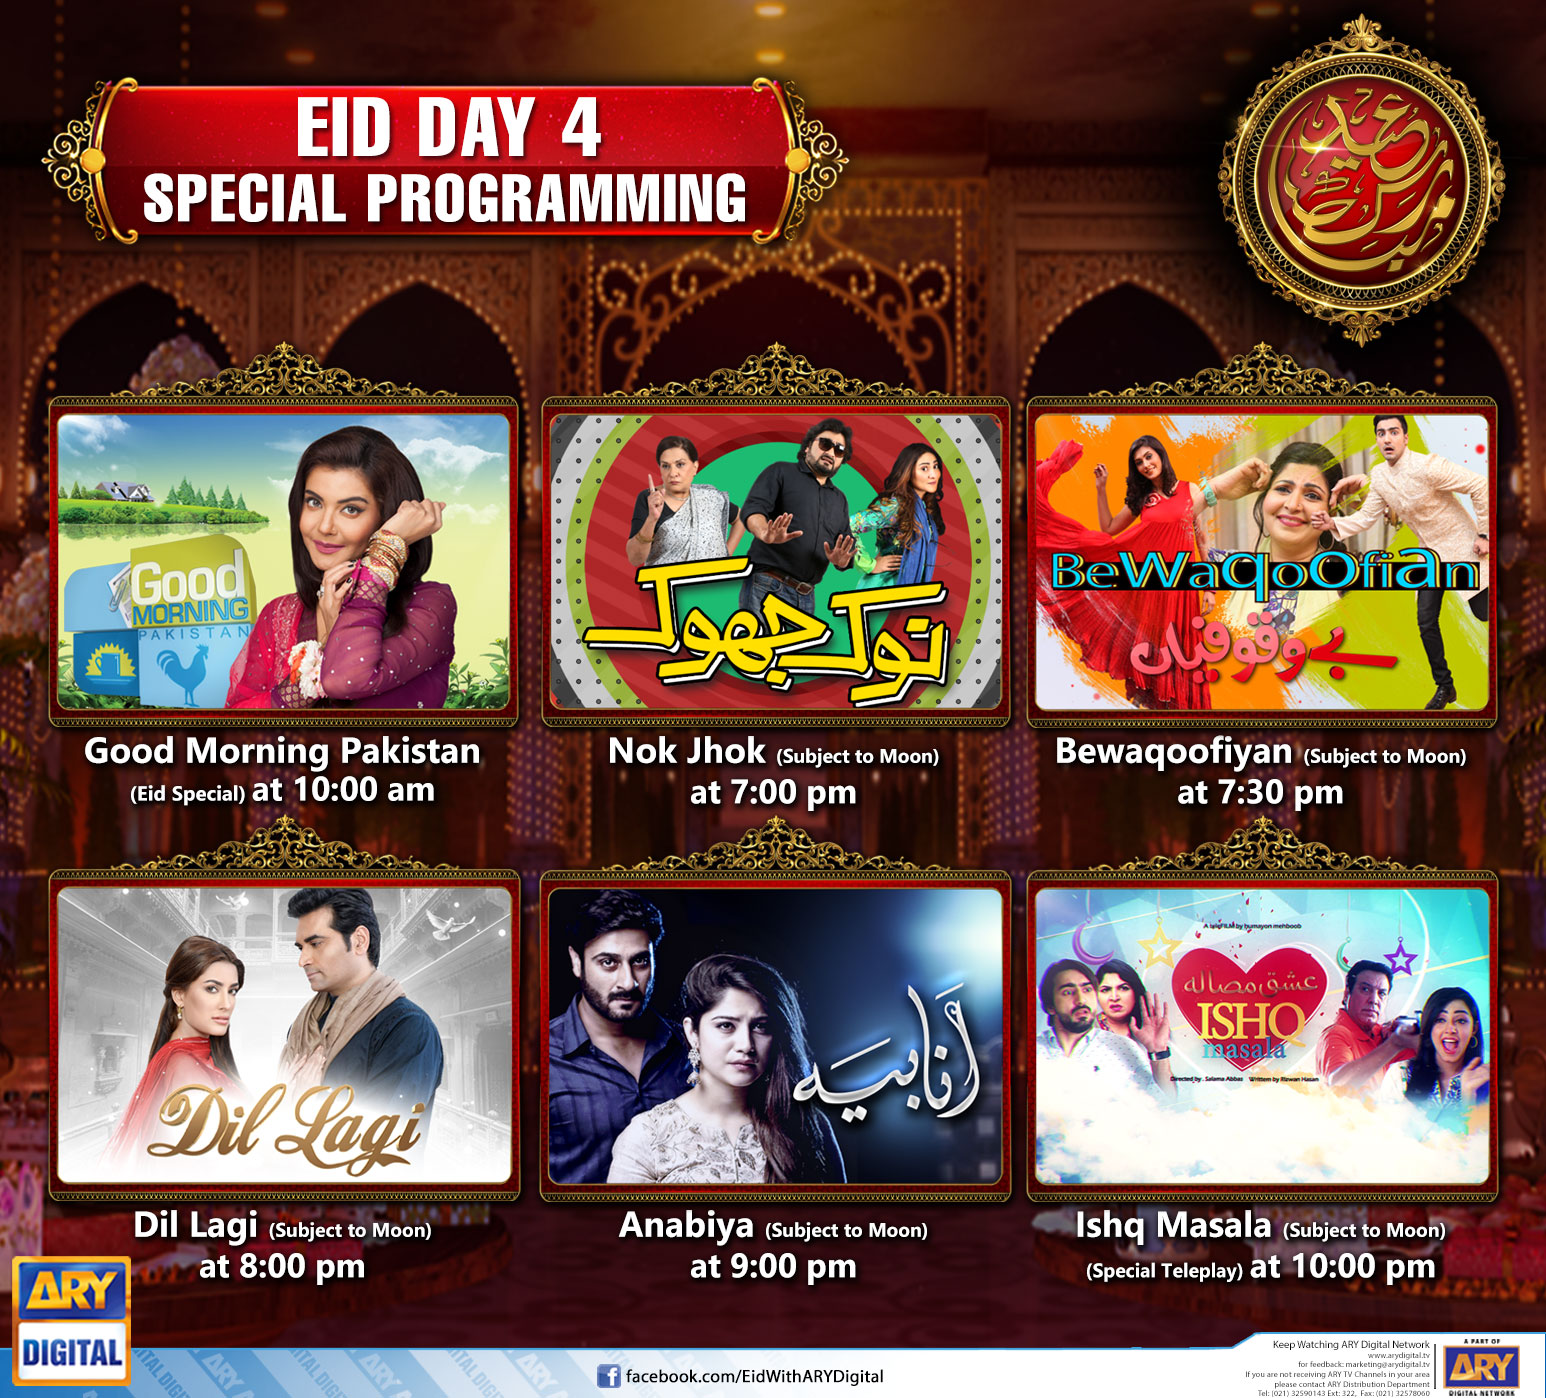 [Press Release] ARY Digital and ARY Zindagi brings exciting programs for Eid 2016 (4)